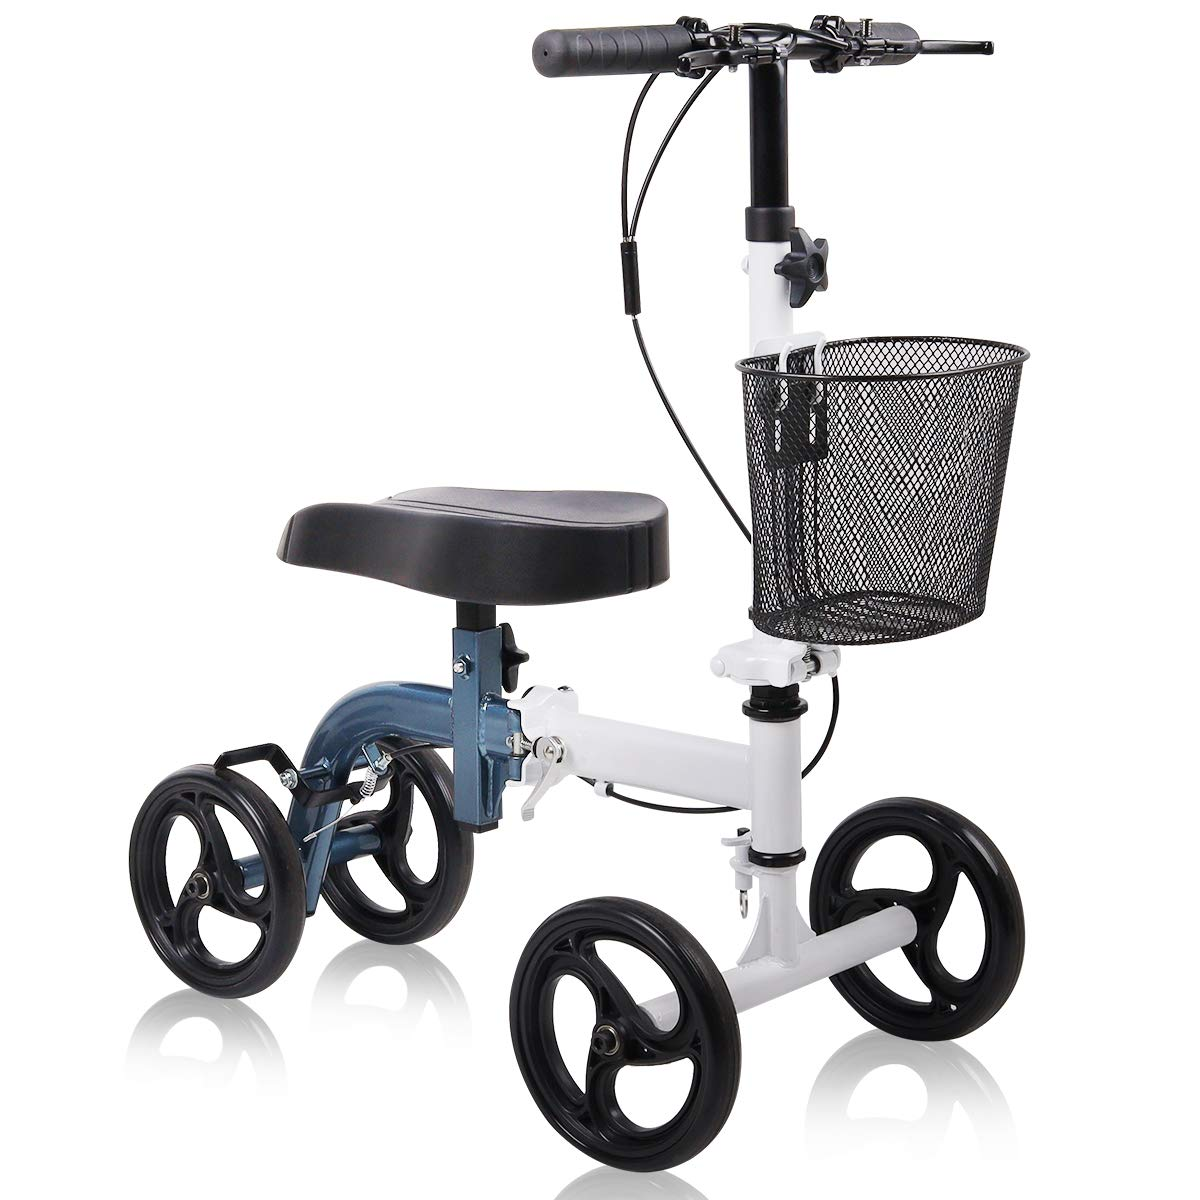 Give Me Knee Scooter - Ultra Compact & Portable Knee Walker Crutches Alternative with Basket in Metallic Blue by Give Me